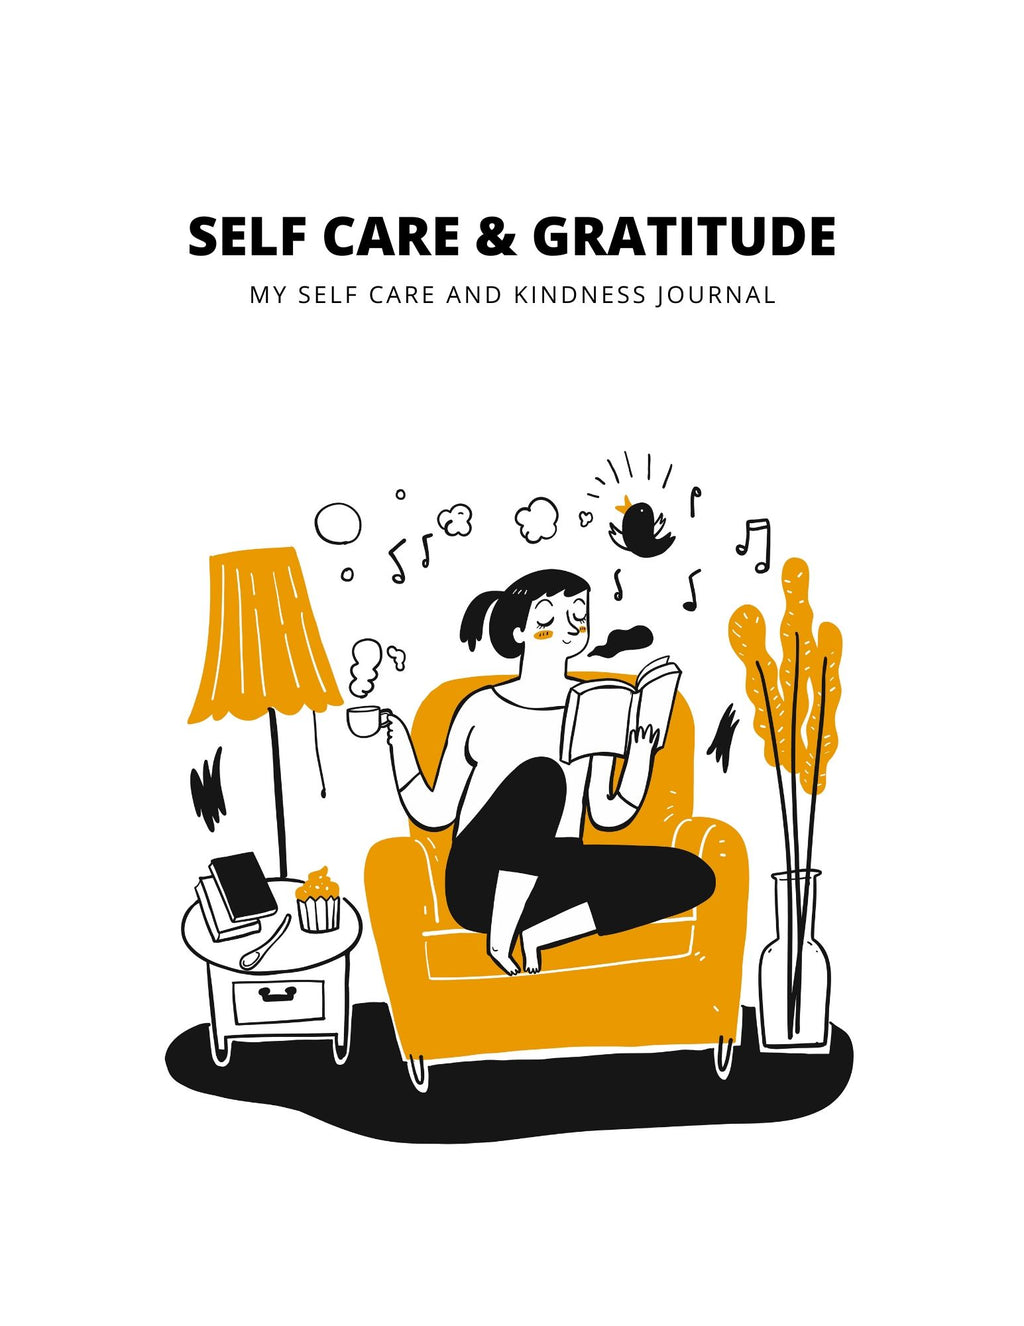 SELF CARE AND GRATITUDE